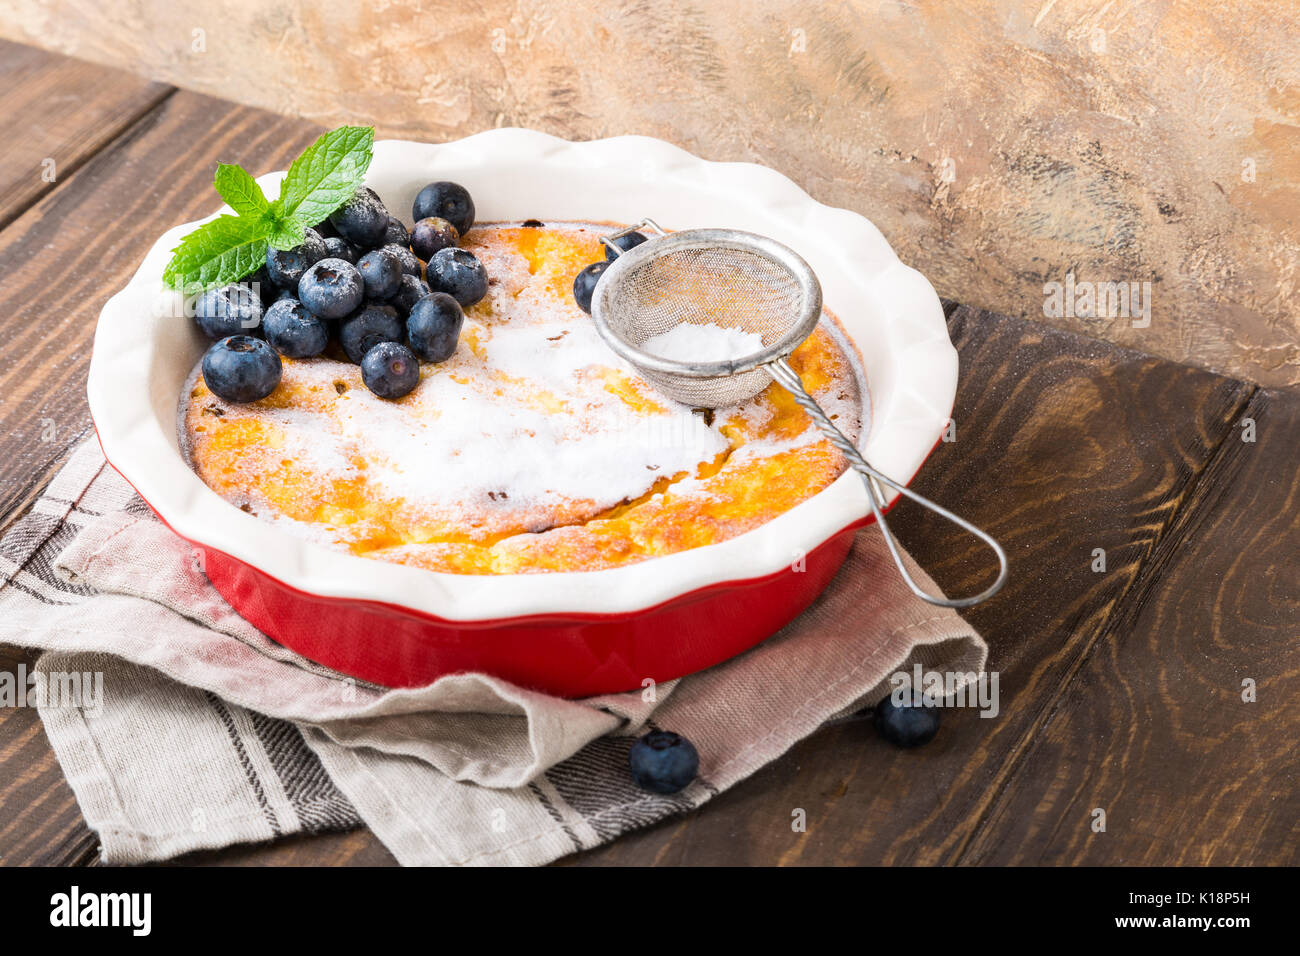 Delicious homemade cheesecake - Stock Image